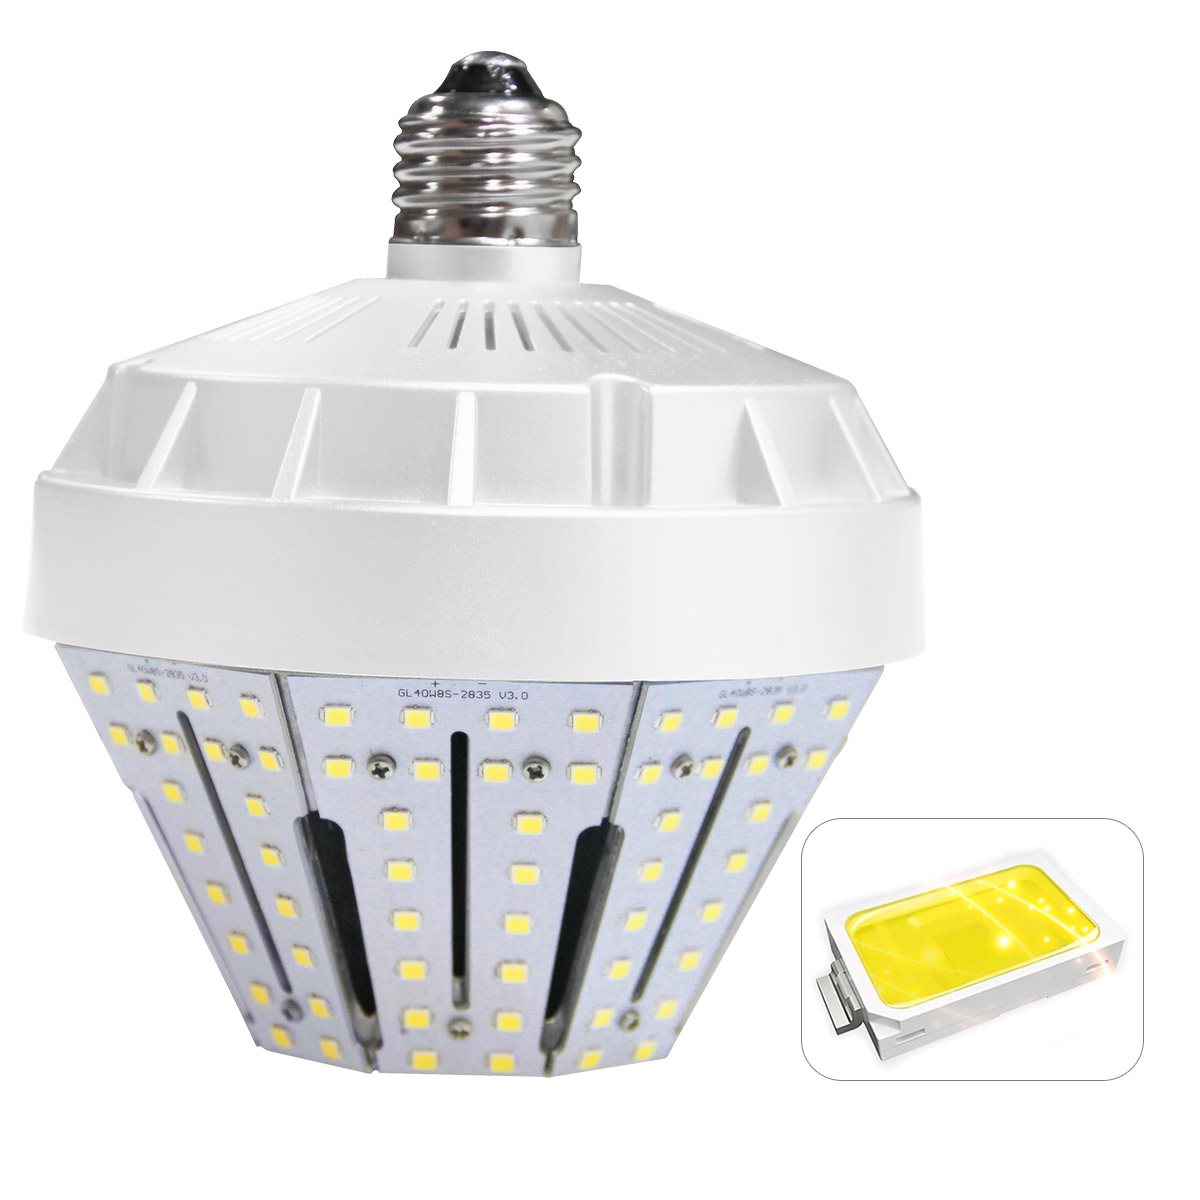 KAWELL 30W LED Garden Light,E26 4500Lm 5000K (Crystal White Glow) Replacement for Fixtures HID/HPS for Indoor Outdoor Large Area Lamp Lighting Factory Warehouse High Bay Barn Porch Backyard Garden